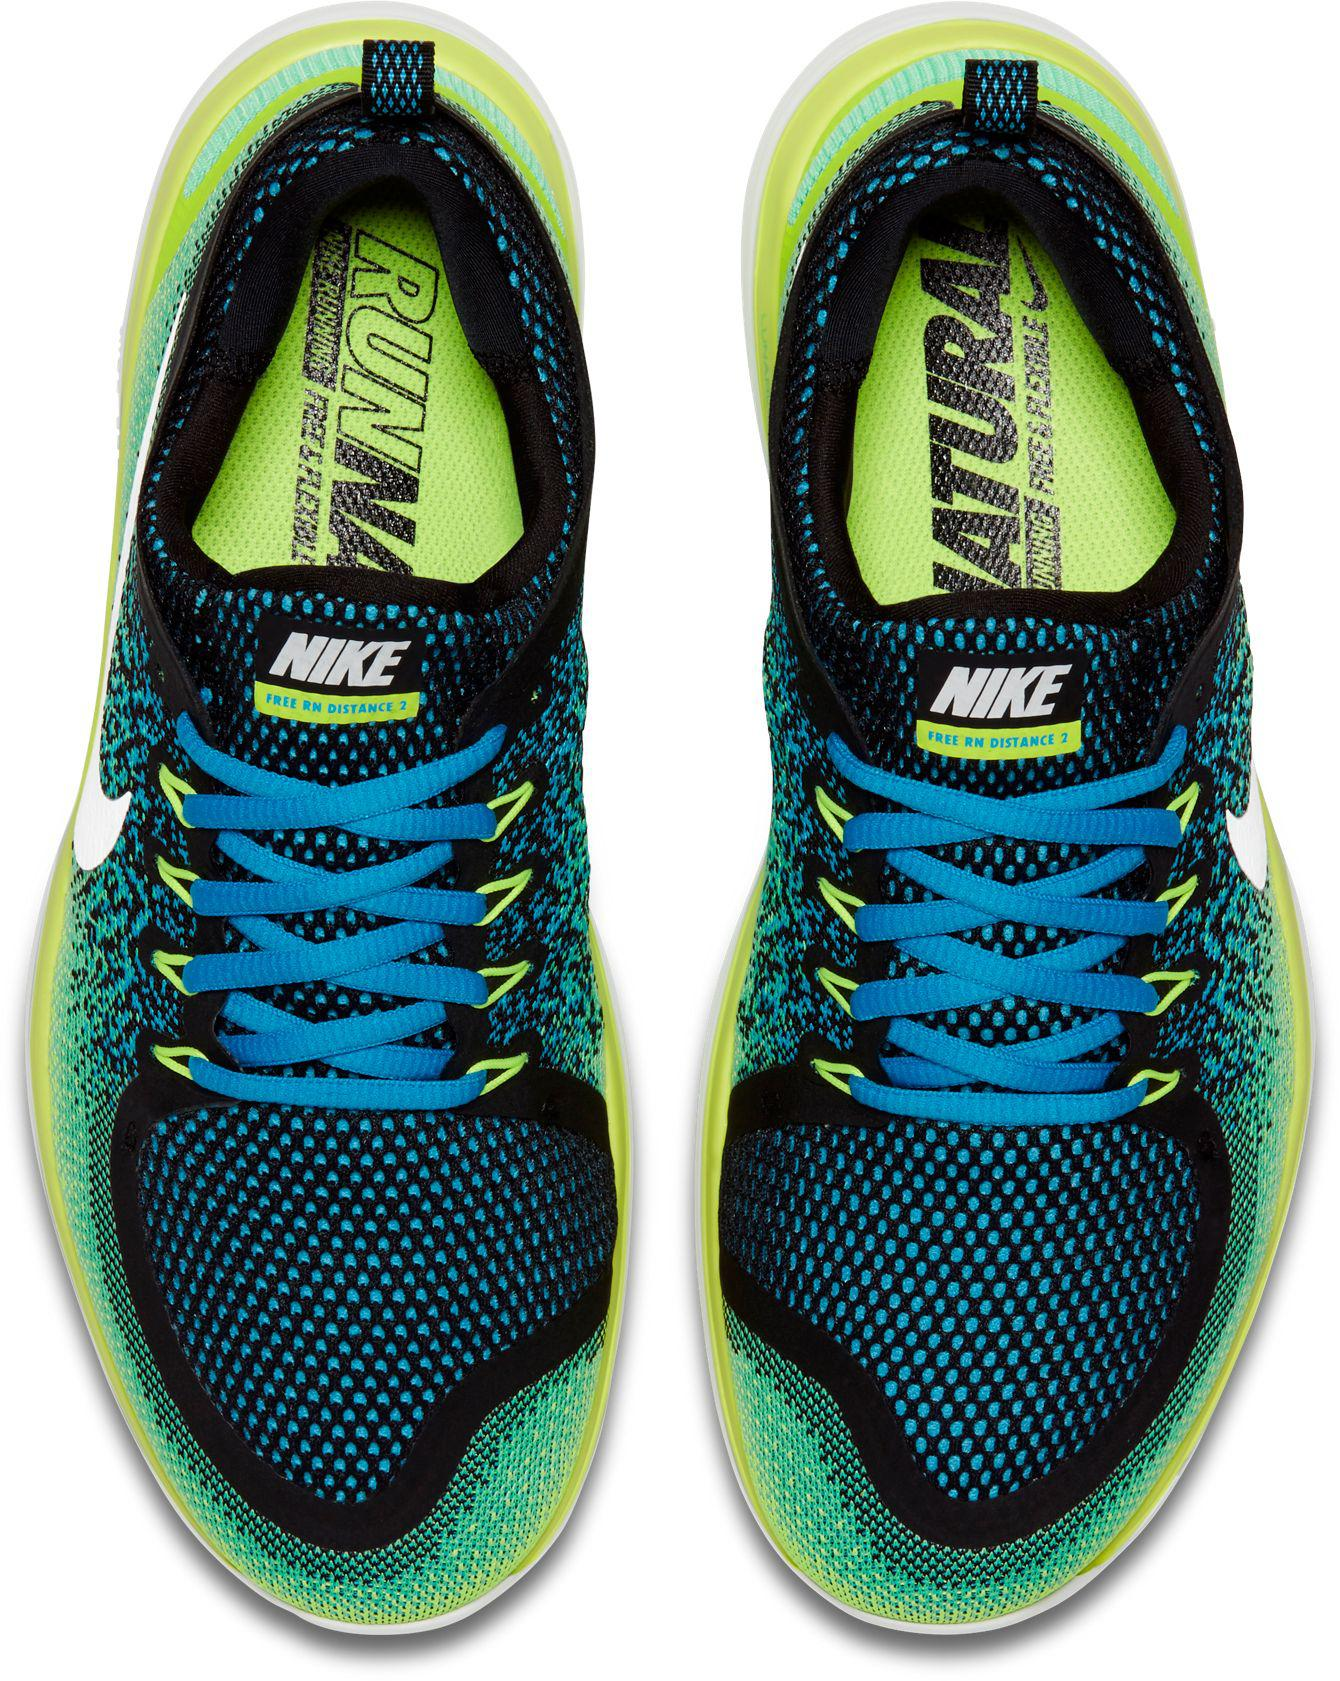 3702f62917c Lyst - Nike Free Rn Distance 2 Running Shoes in Green for Men